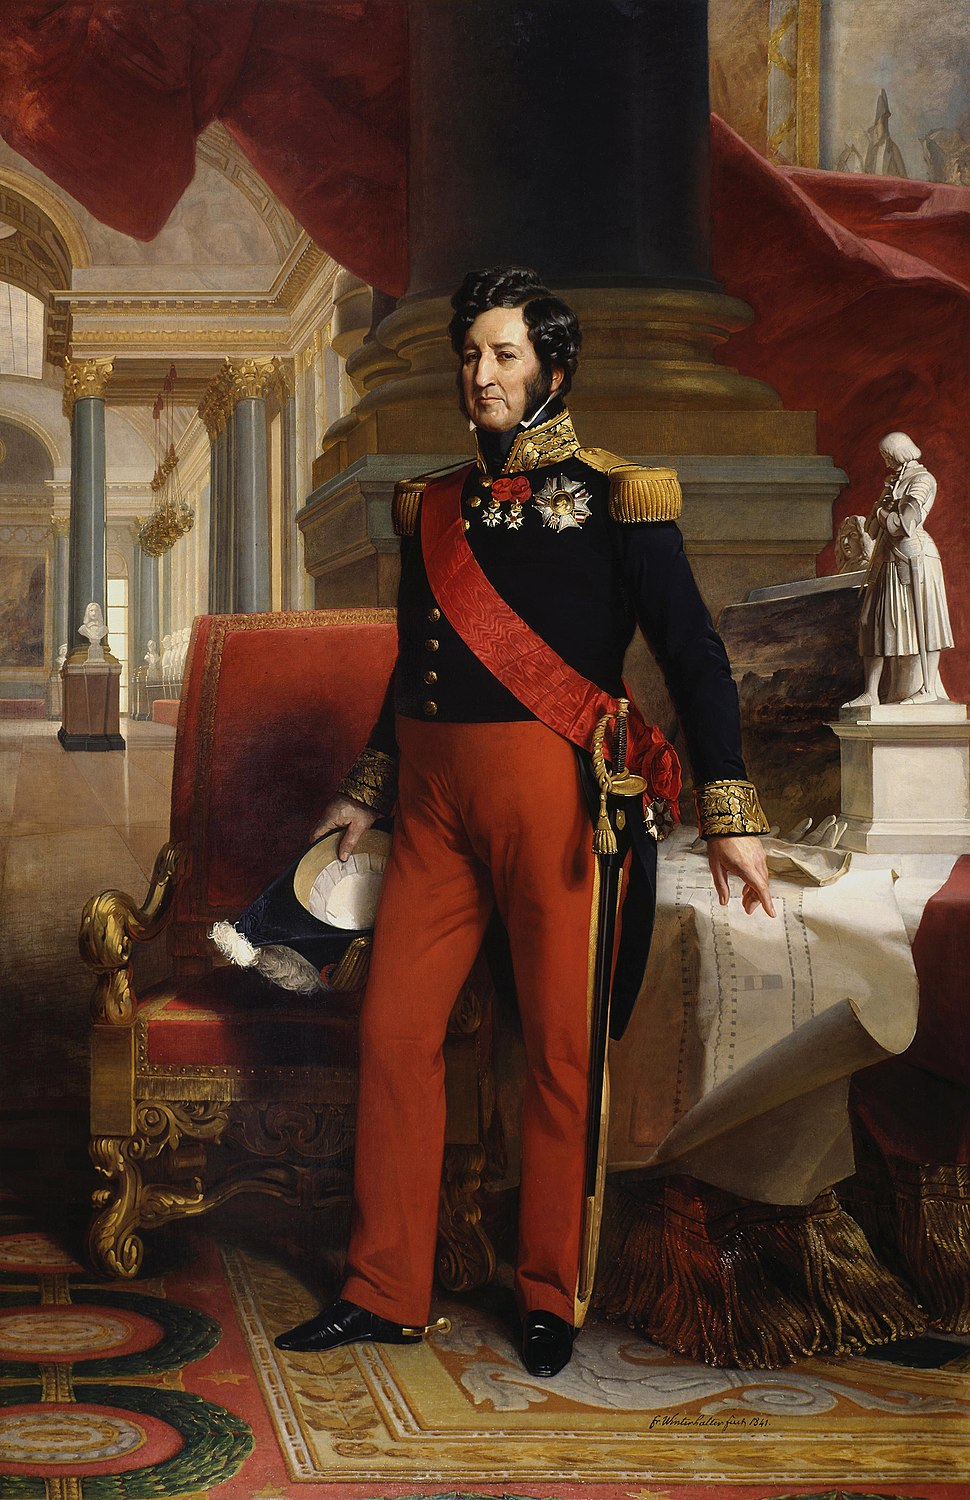 1841 portrait painting of Louis Philippe I (King of the French) by Winterhalter